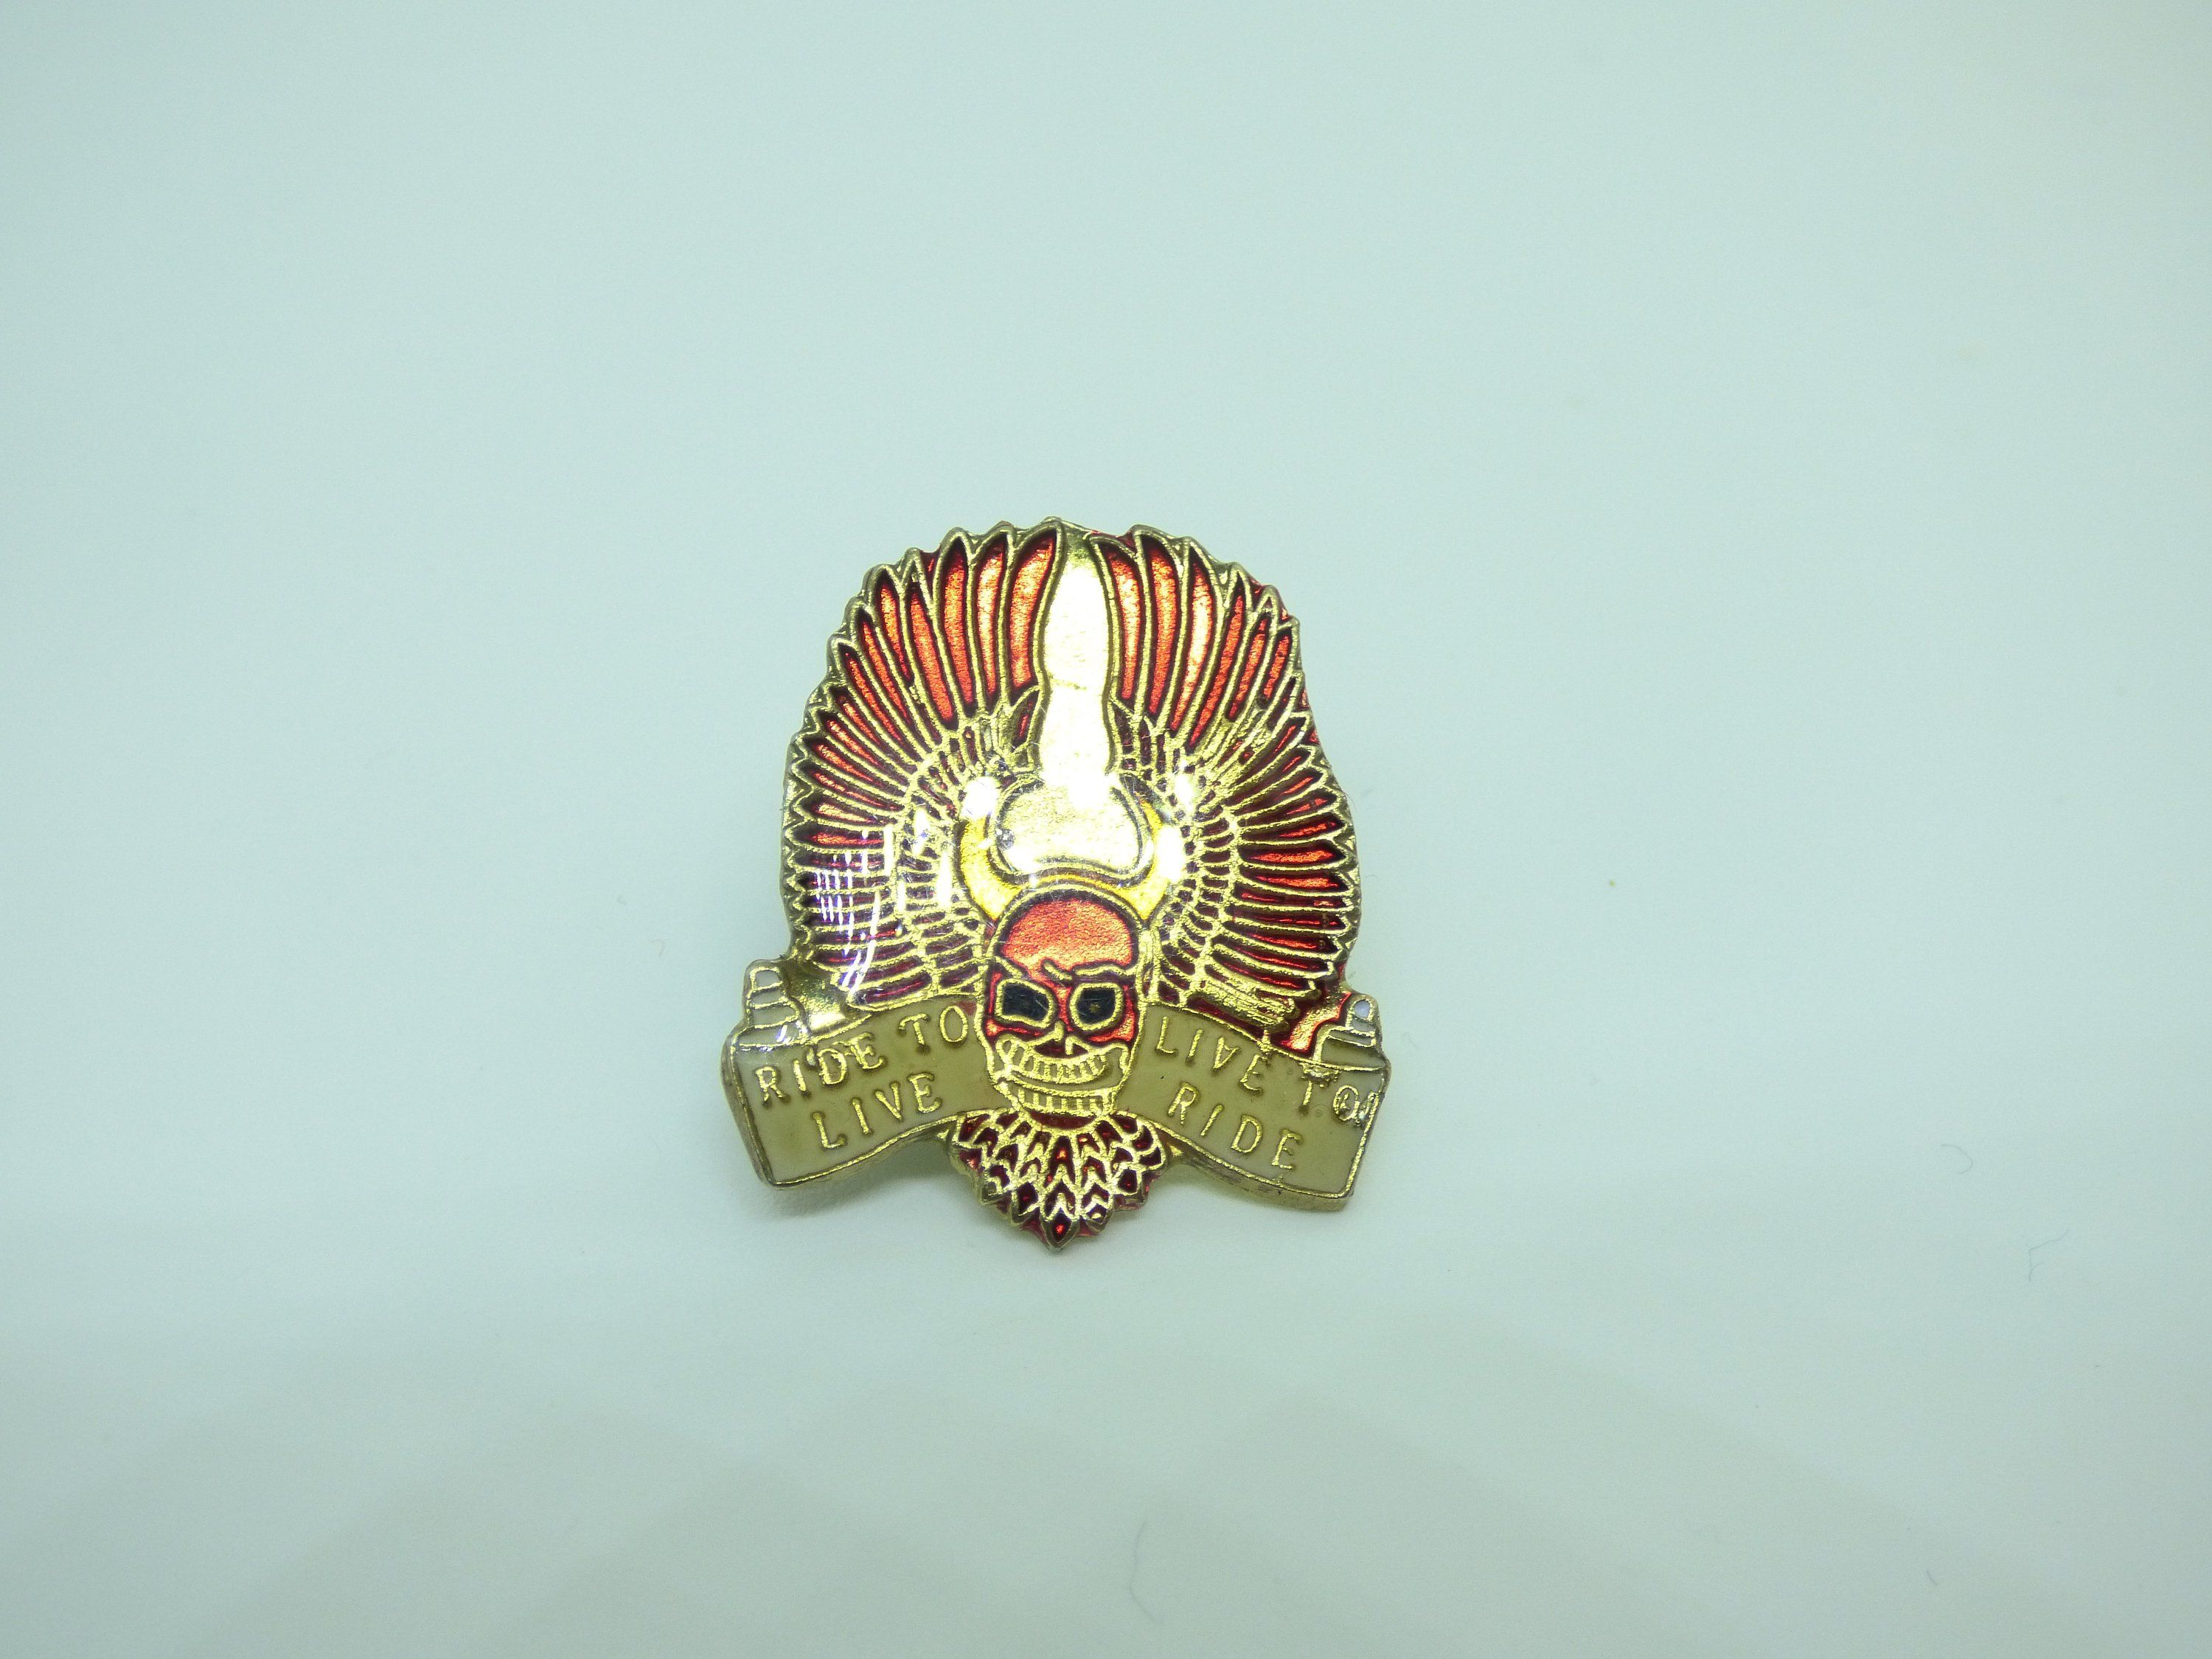 65d8713e070b6 Vintage 80s Ride to Live - Live to Ride - Biker - Harley Davidson - Winged  Skull Enamel Pin   Button   Badge by beatbopboom on Etsy